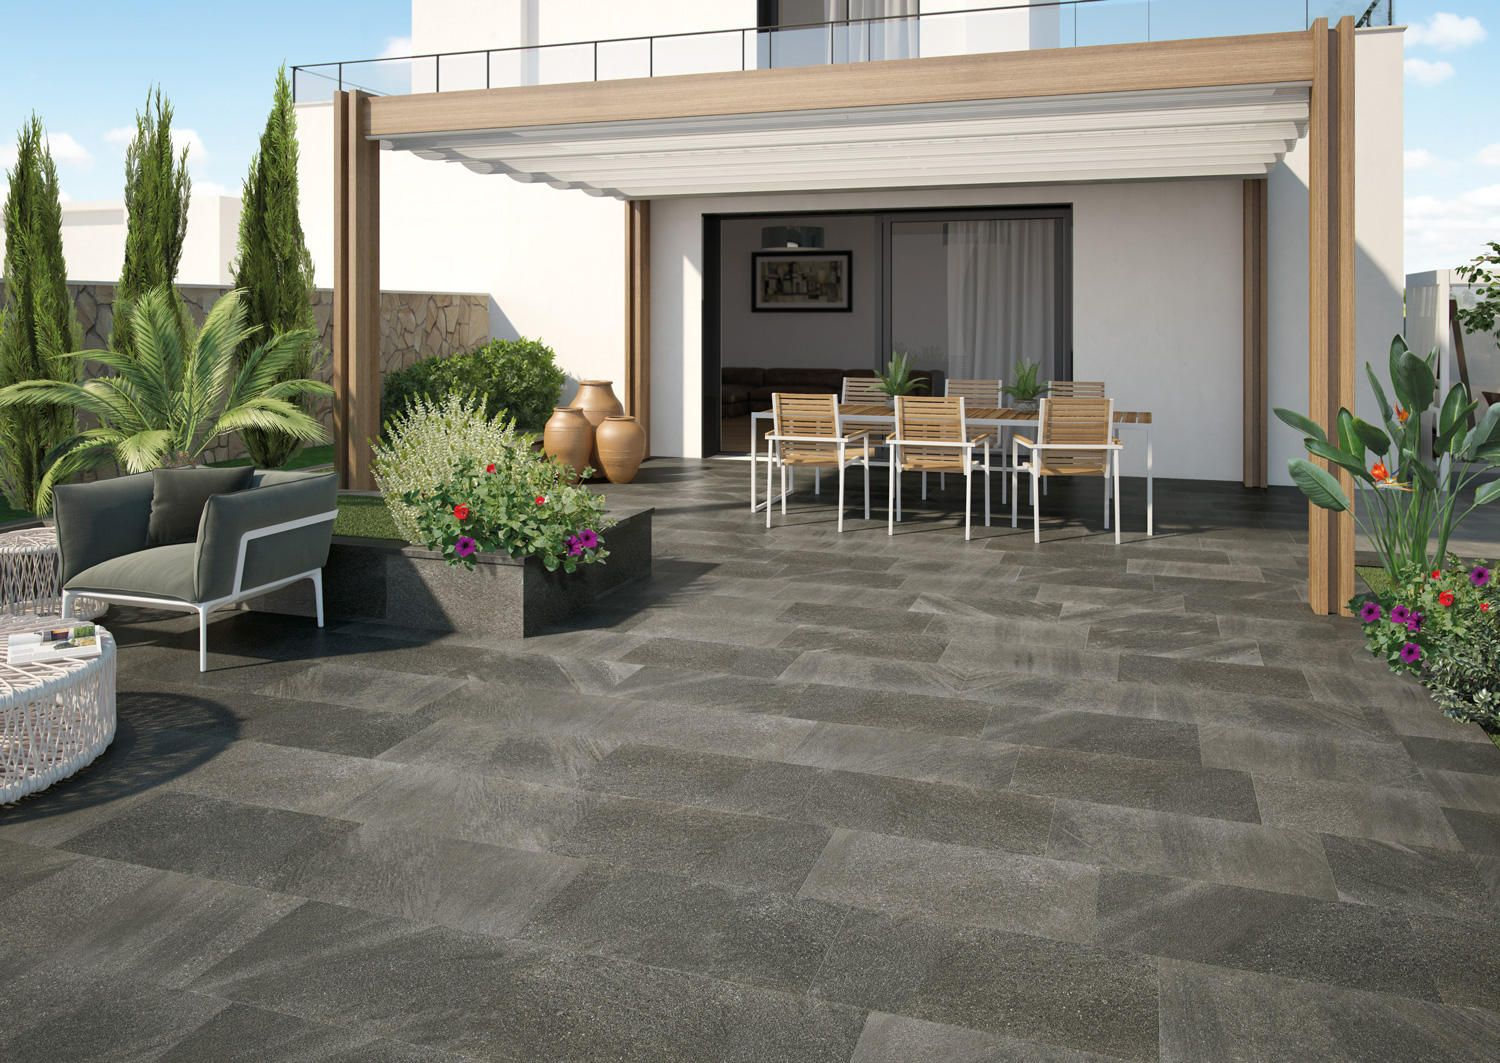 stromboli light de ceramica mayor exteriores pinterest On ceramicas para patios y terrazas